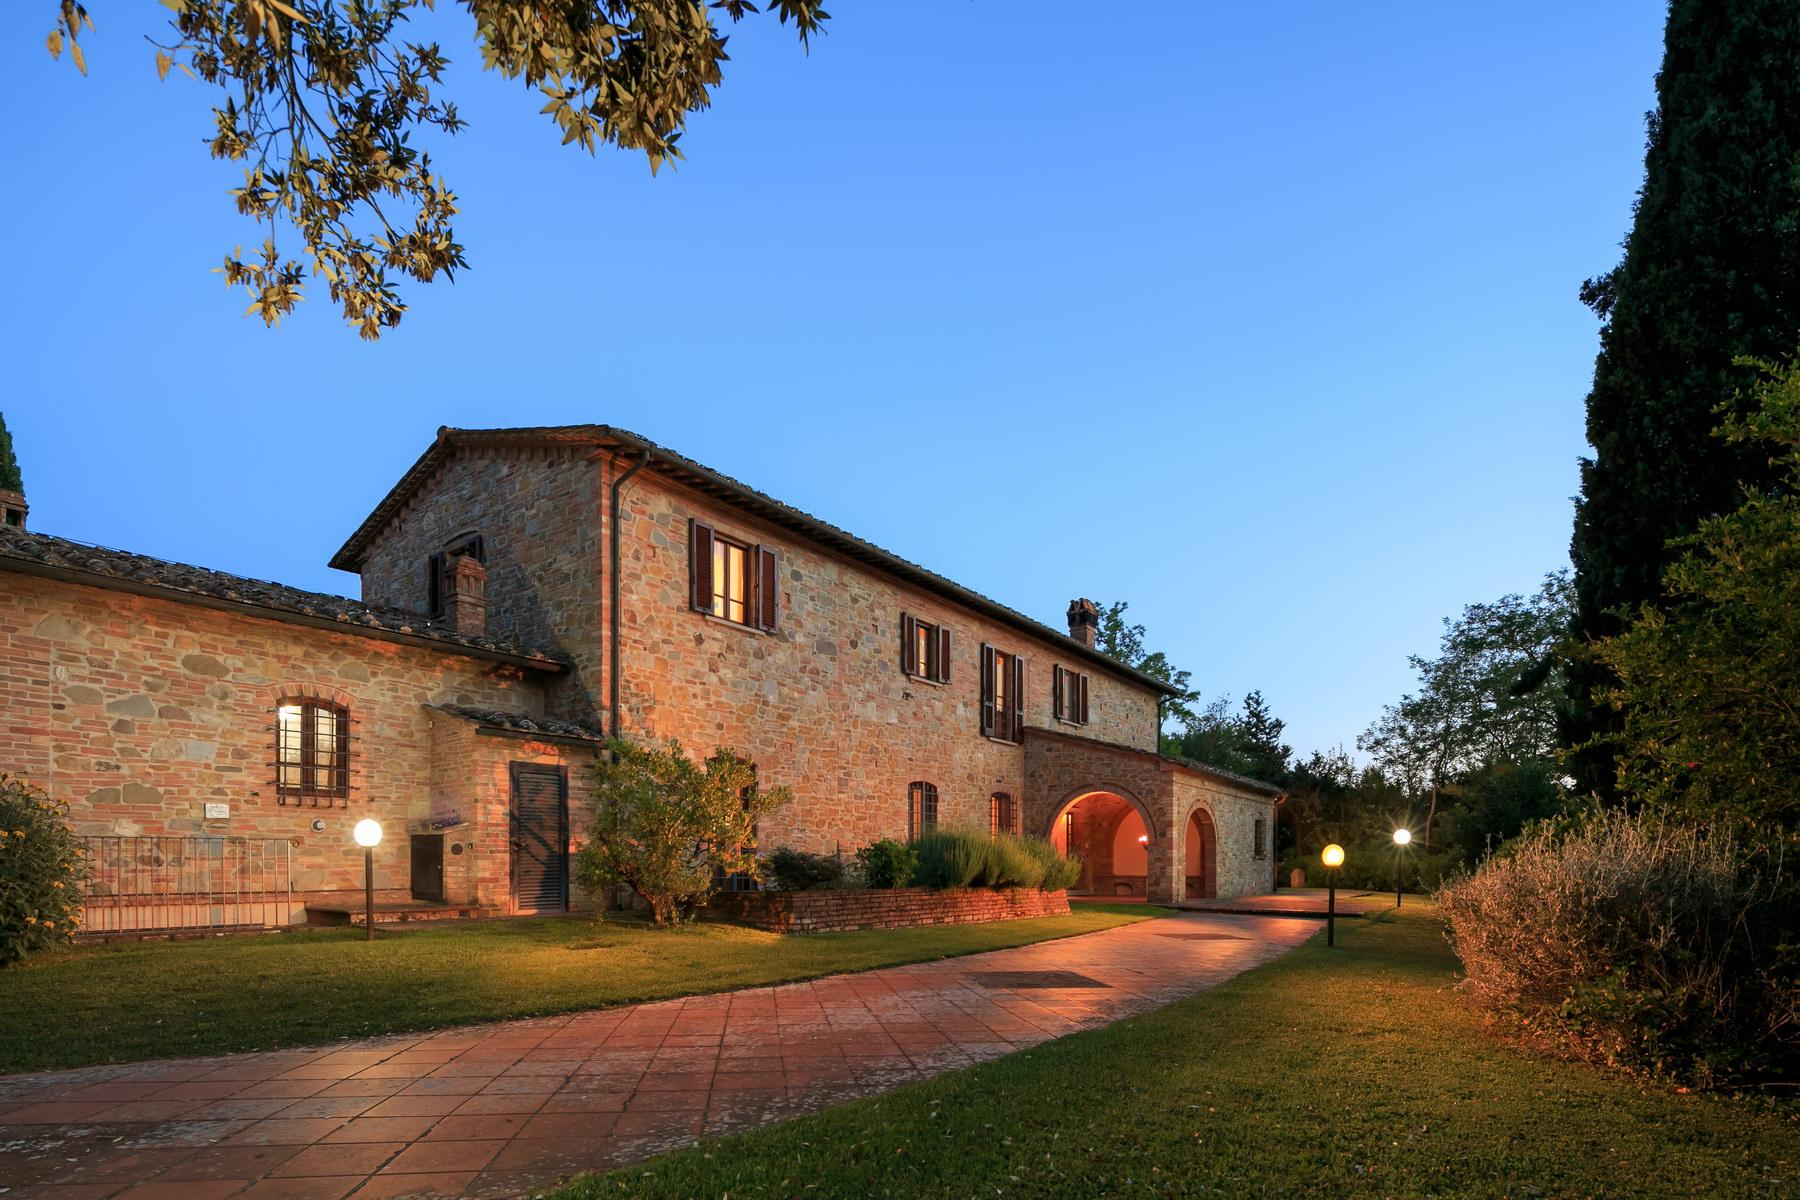 Wonderful countryhouse in the tuscan countryside - 17